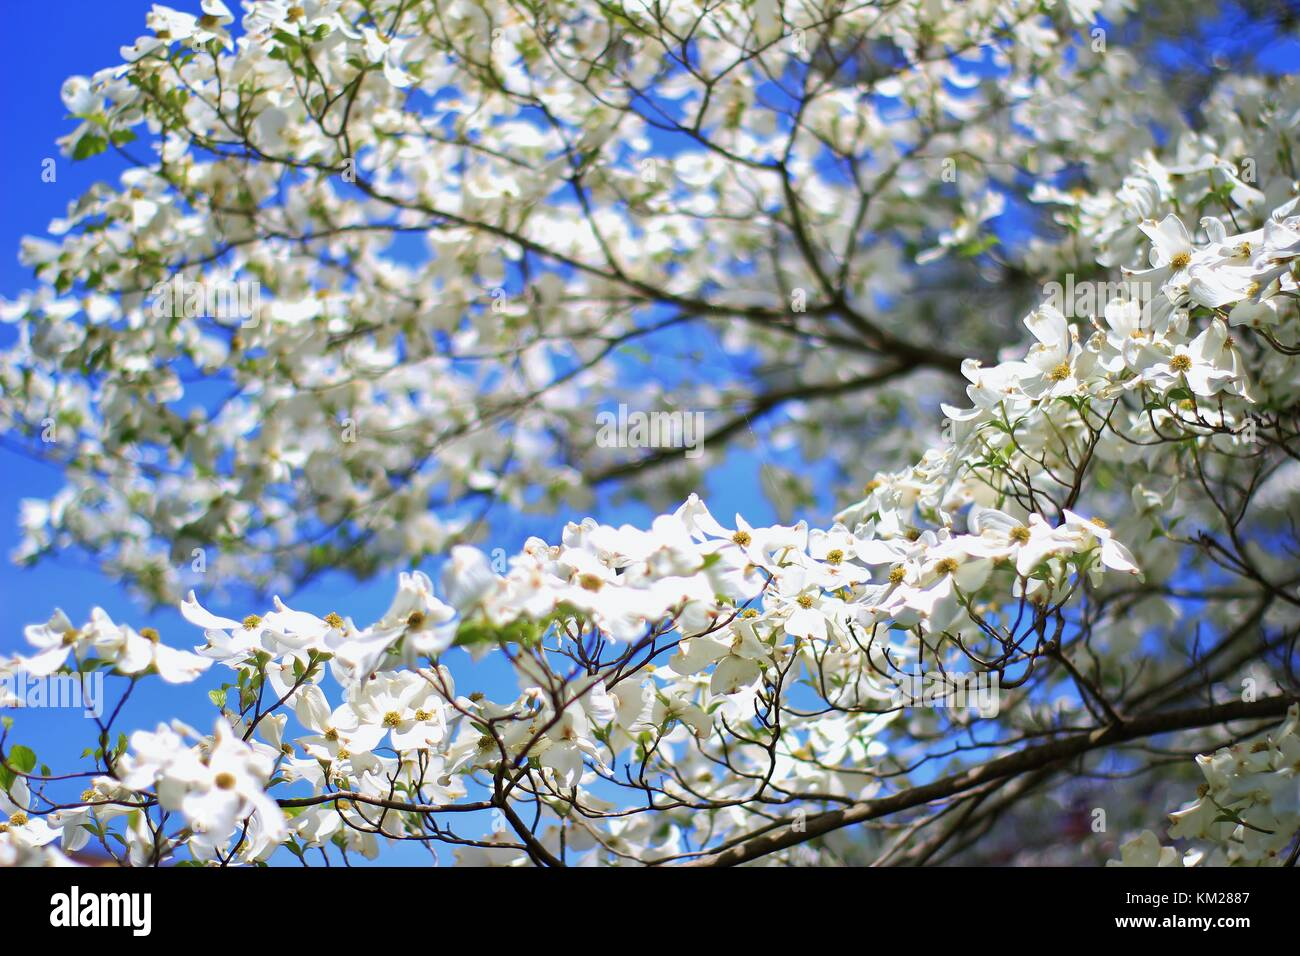 Dogwood Tree Blossoms - The Purest White from Colors in Nature Stock Photo